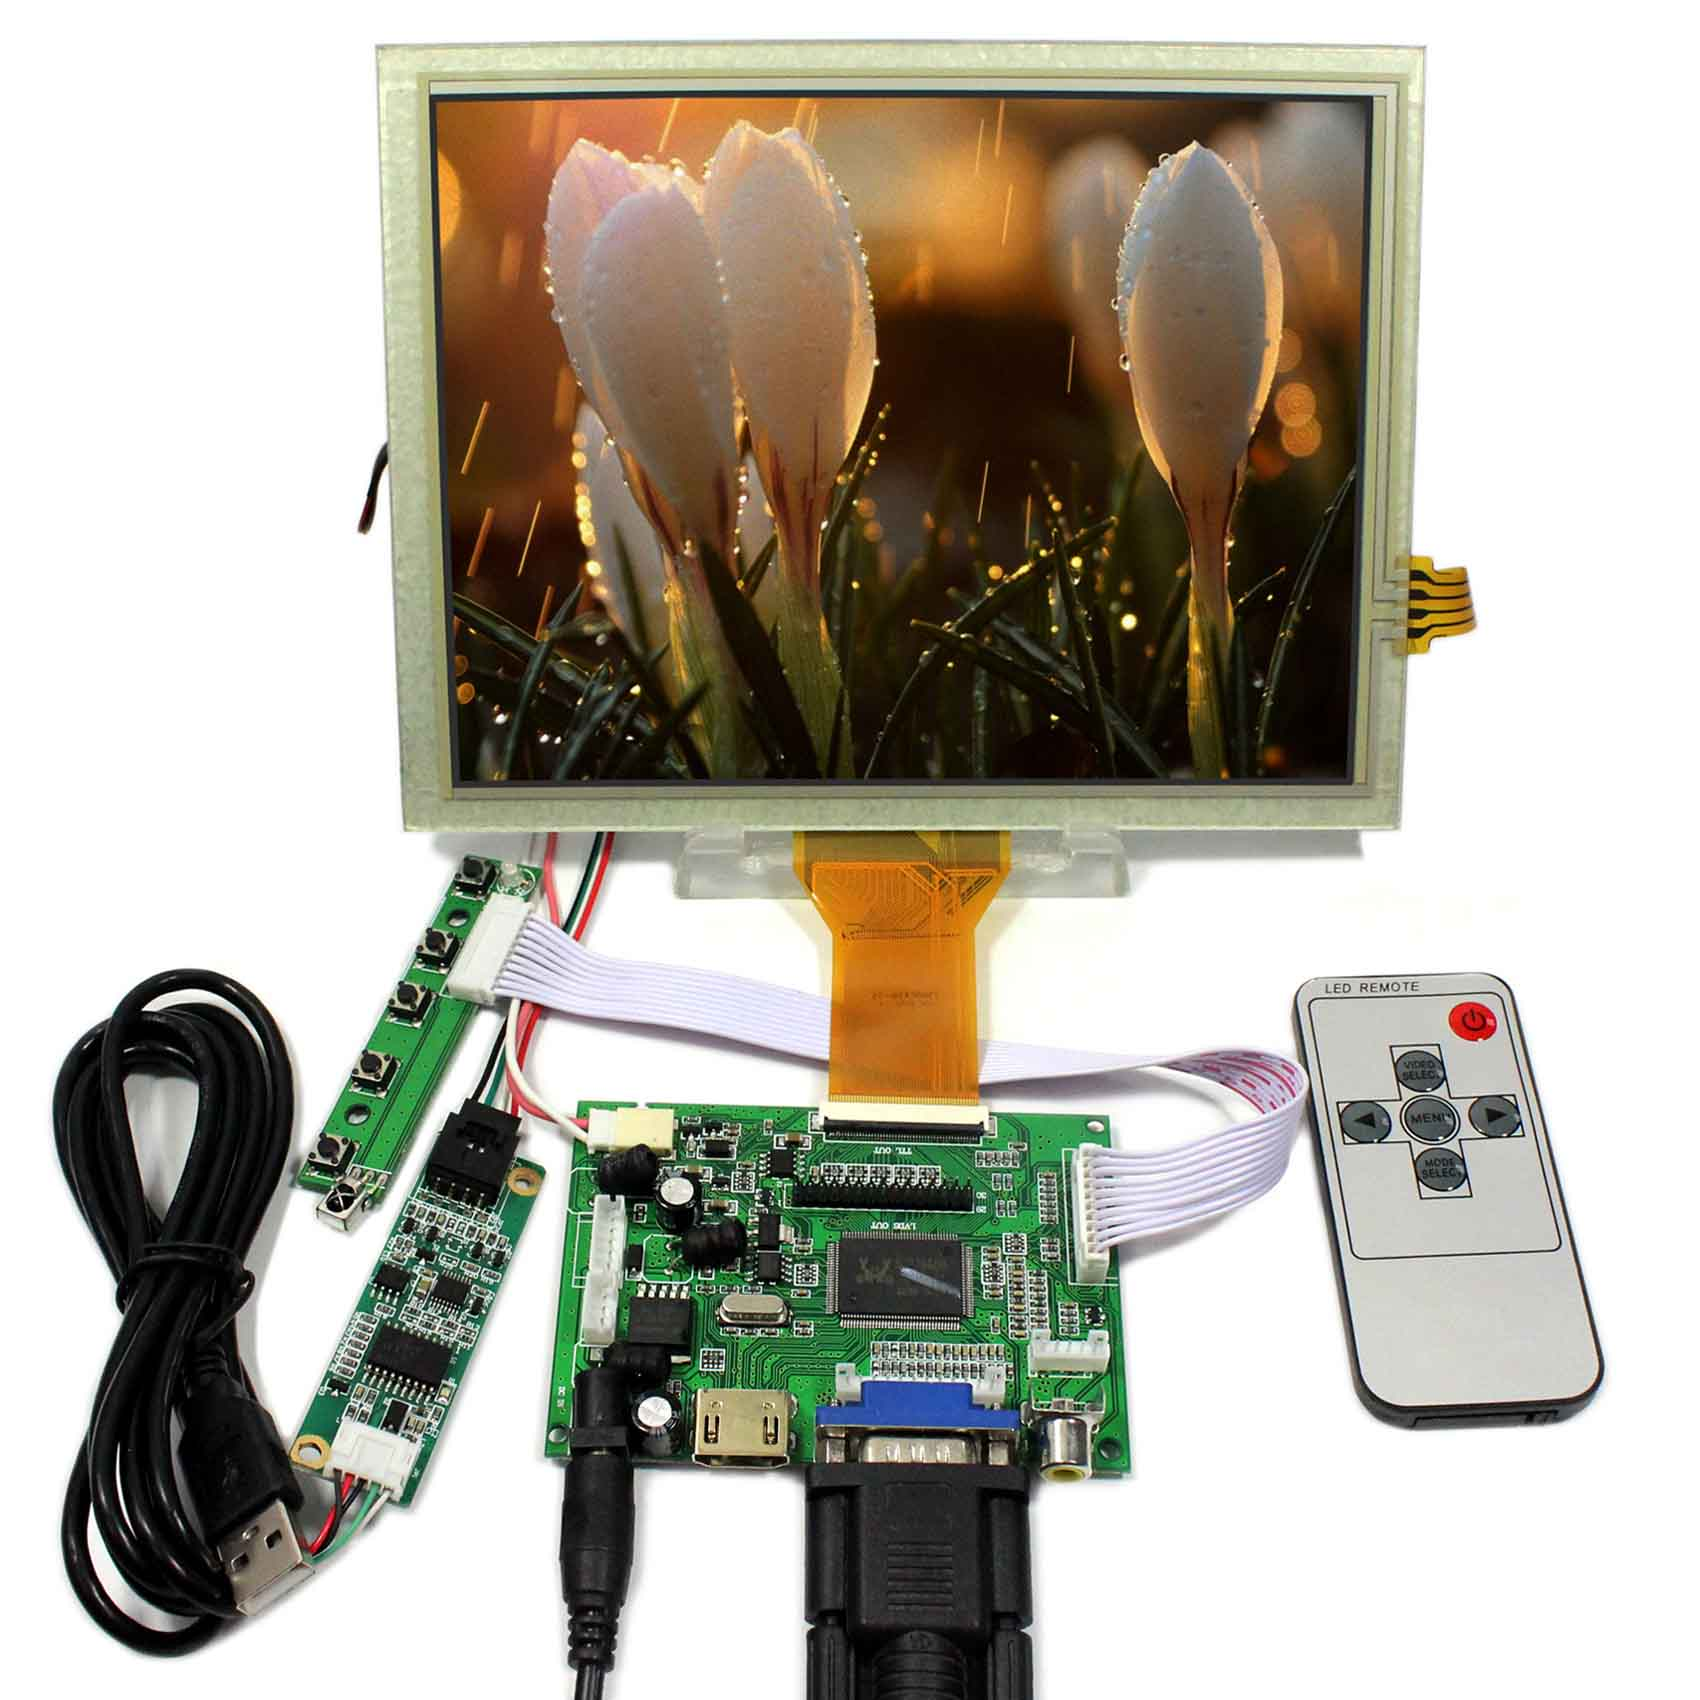 8inch LCD Screen EJ080NA-05A HDMI VGA 2AV LCD Controller Board Touch Panel 4wire Resistive Resolution 800x600 Remote Control8inch LCD Screen EJ080NA-05A HDMI VGA 2AV LCD Controller Board Touch Panel 4wire Resistive Resolution 800x600 Remote Control